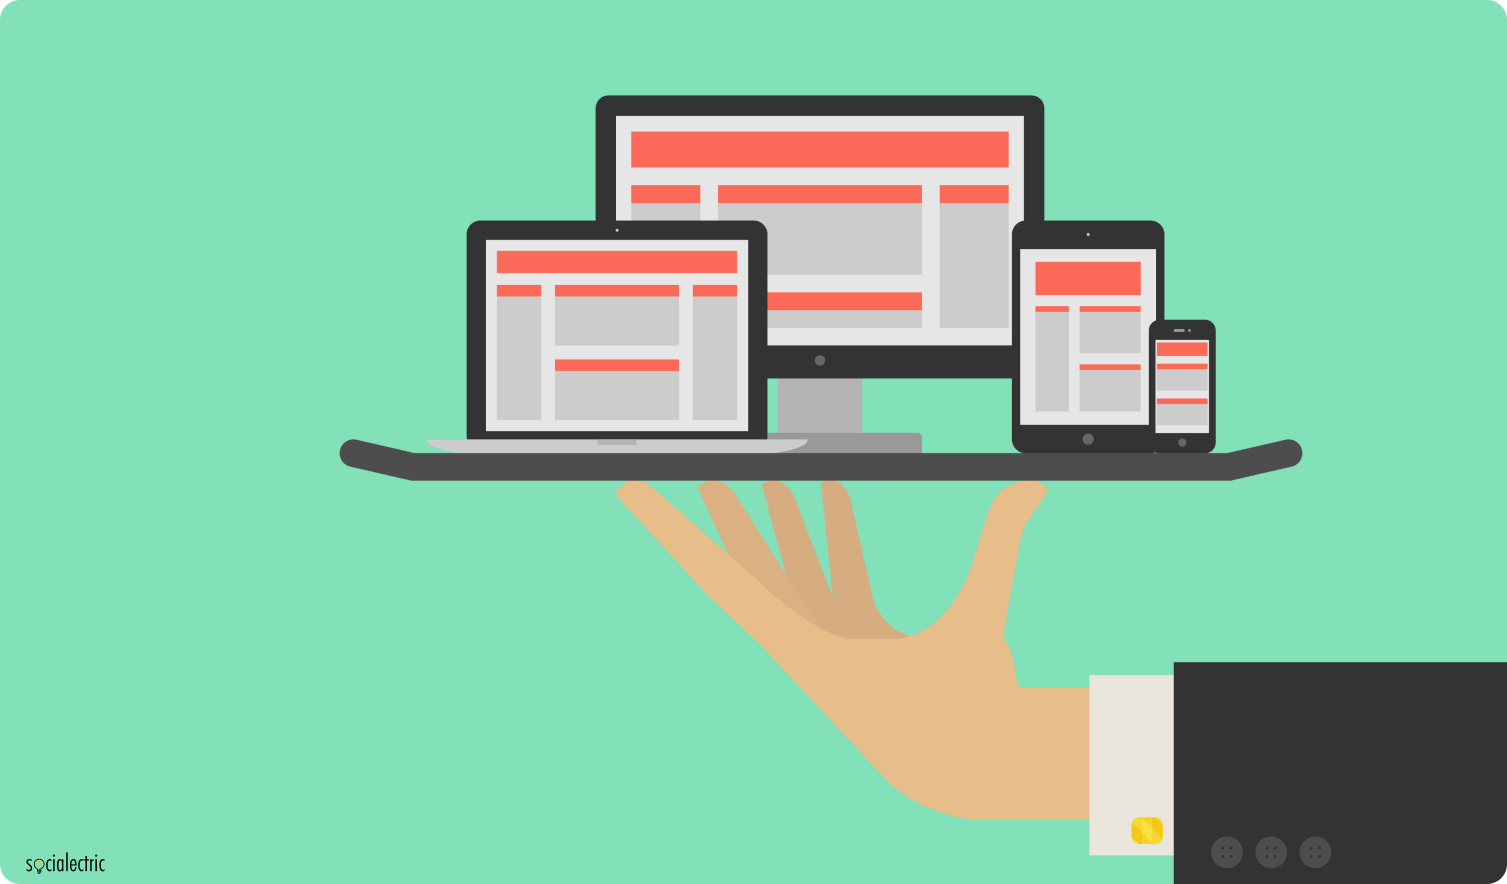 Capability-on-every-devices-is-a-plus-point-for-website-designer